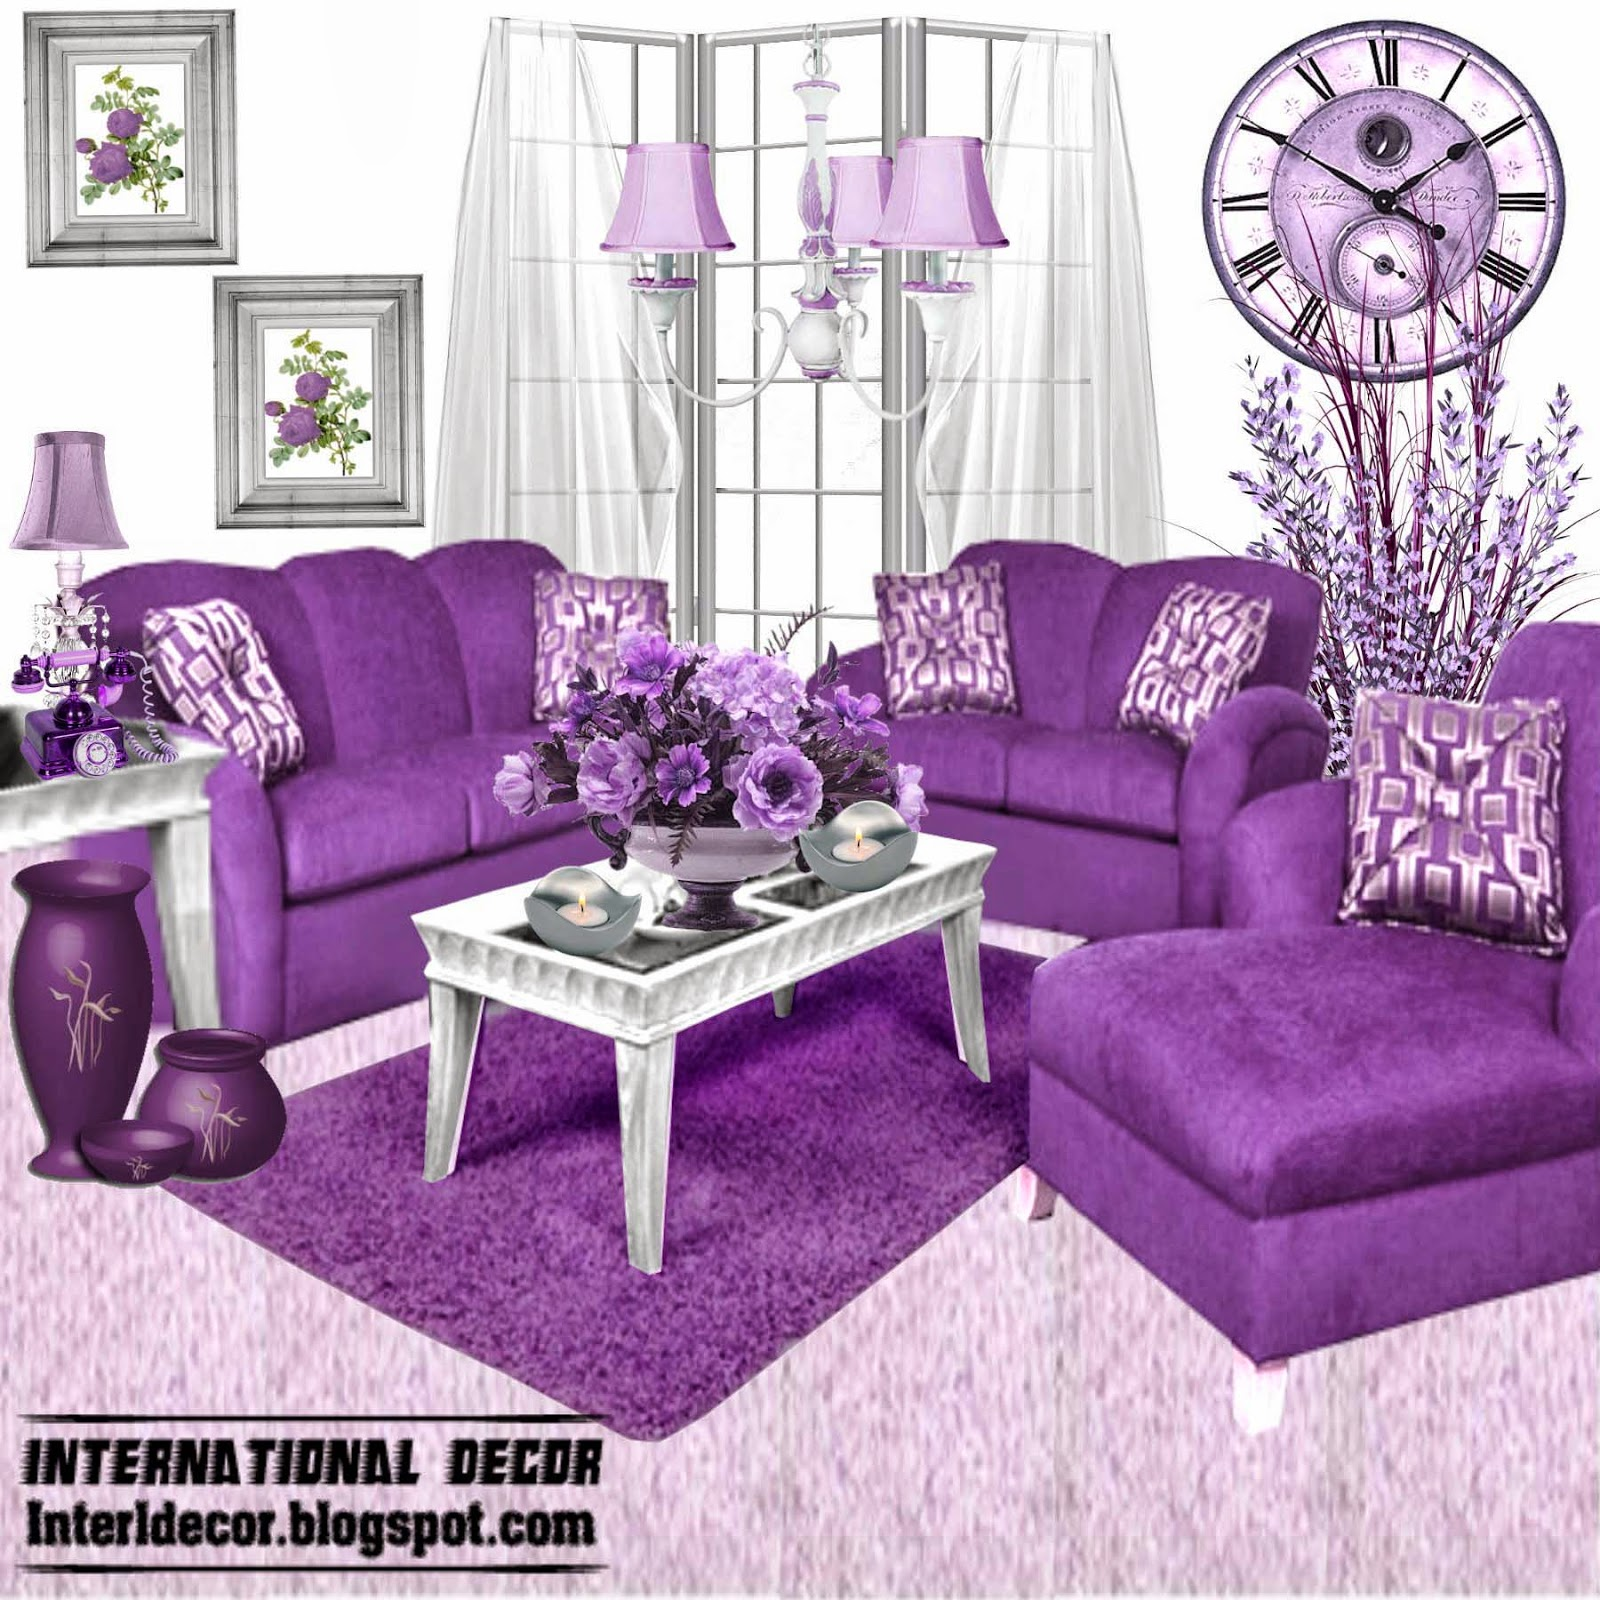 Luxury purple furniture sets sofas chairs for living for Furniture in room